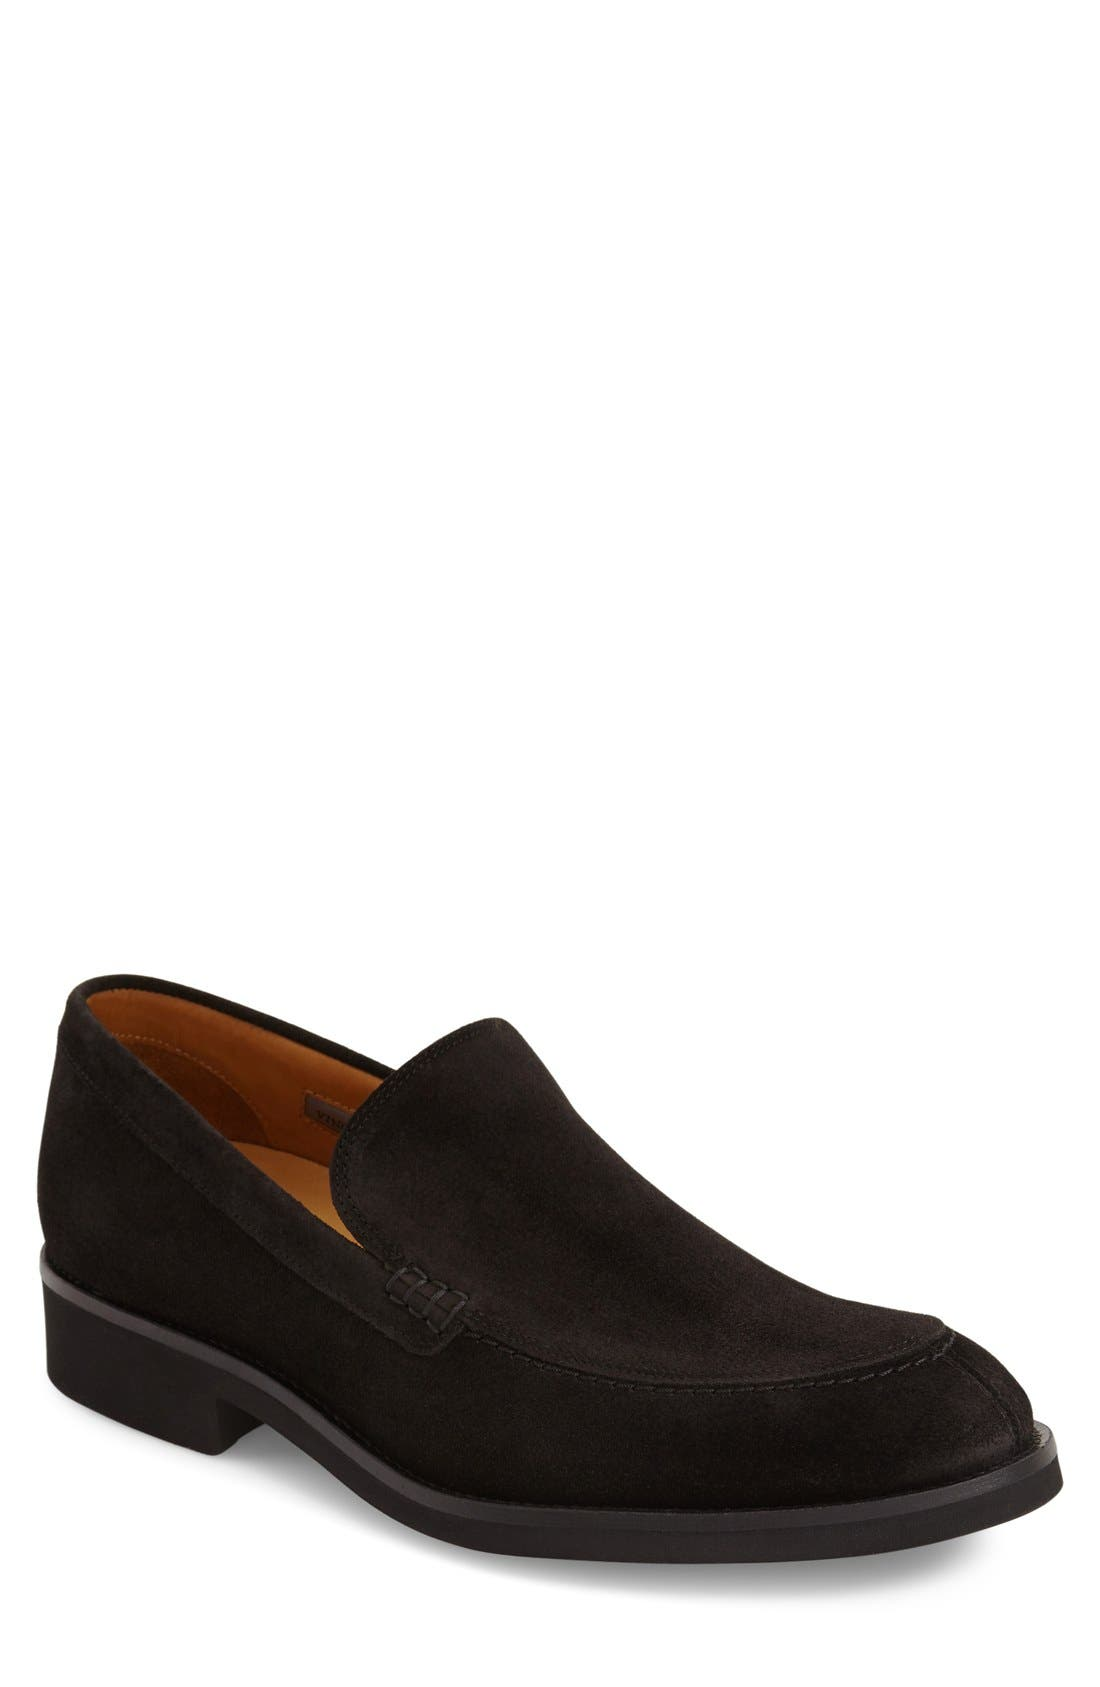 'Arleigh' Loafer,                         Main,                         color, Black Suede